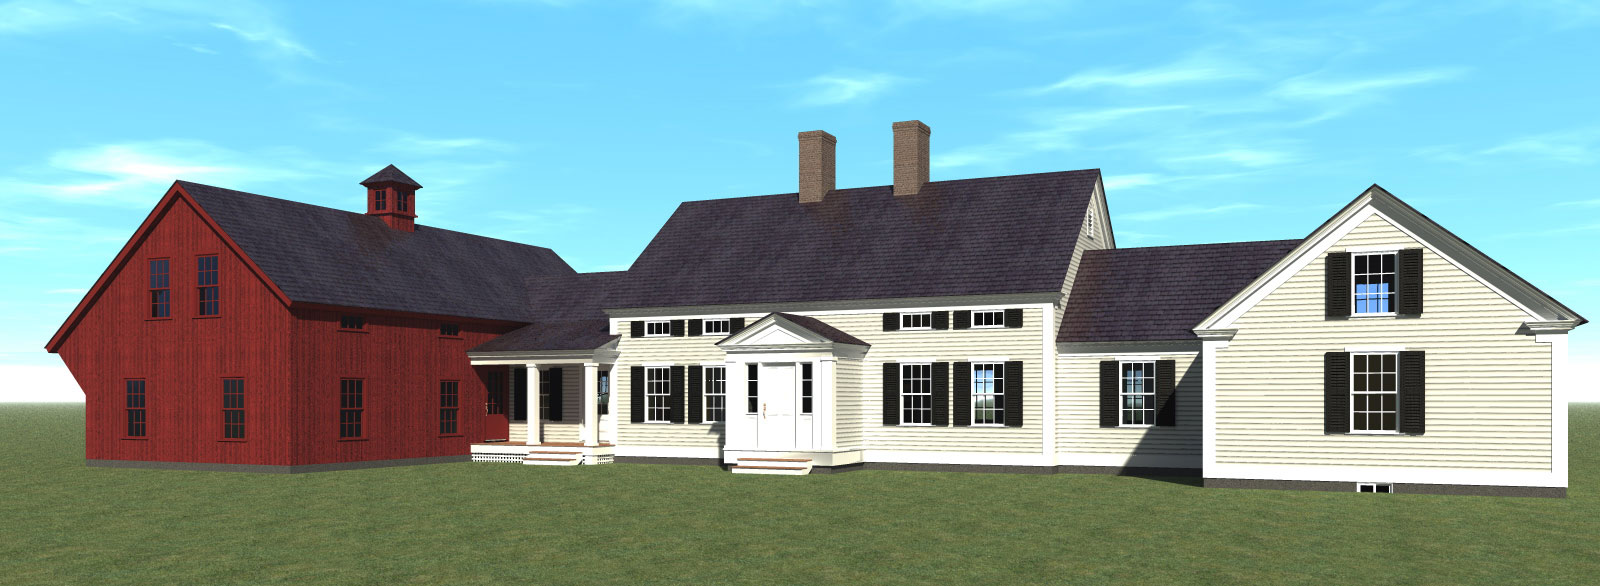 Badger and associates inc house plans for sale Houses plans for sale